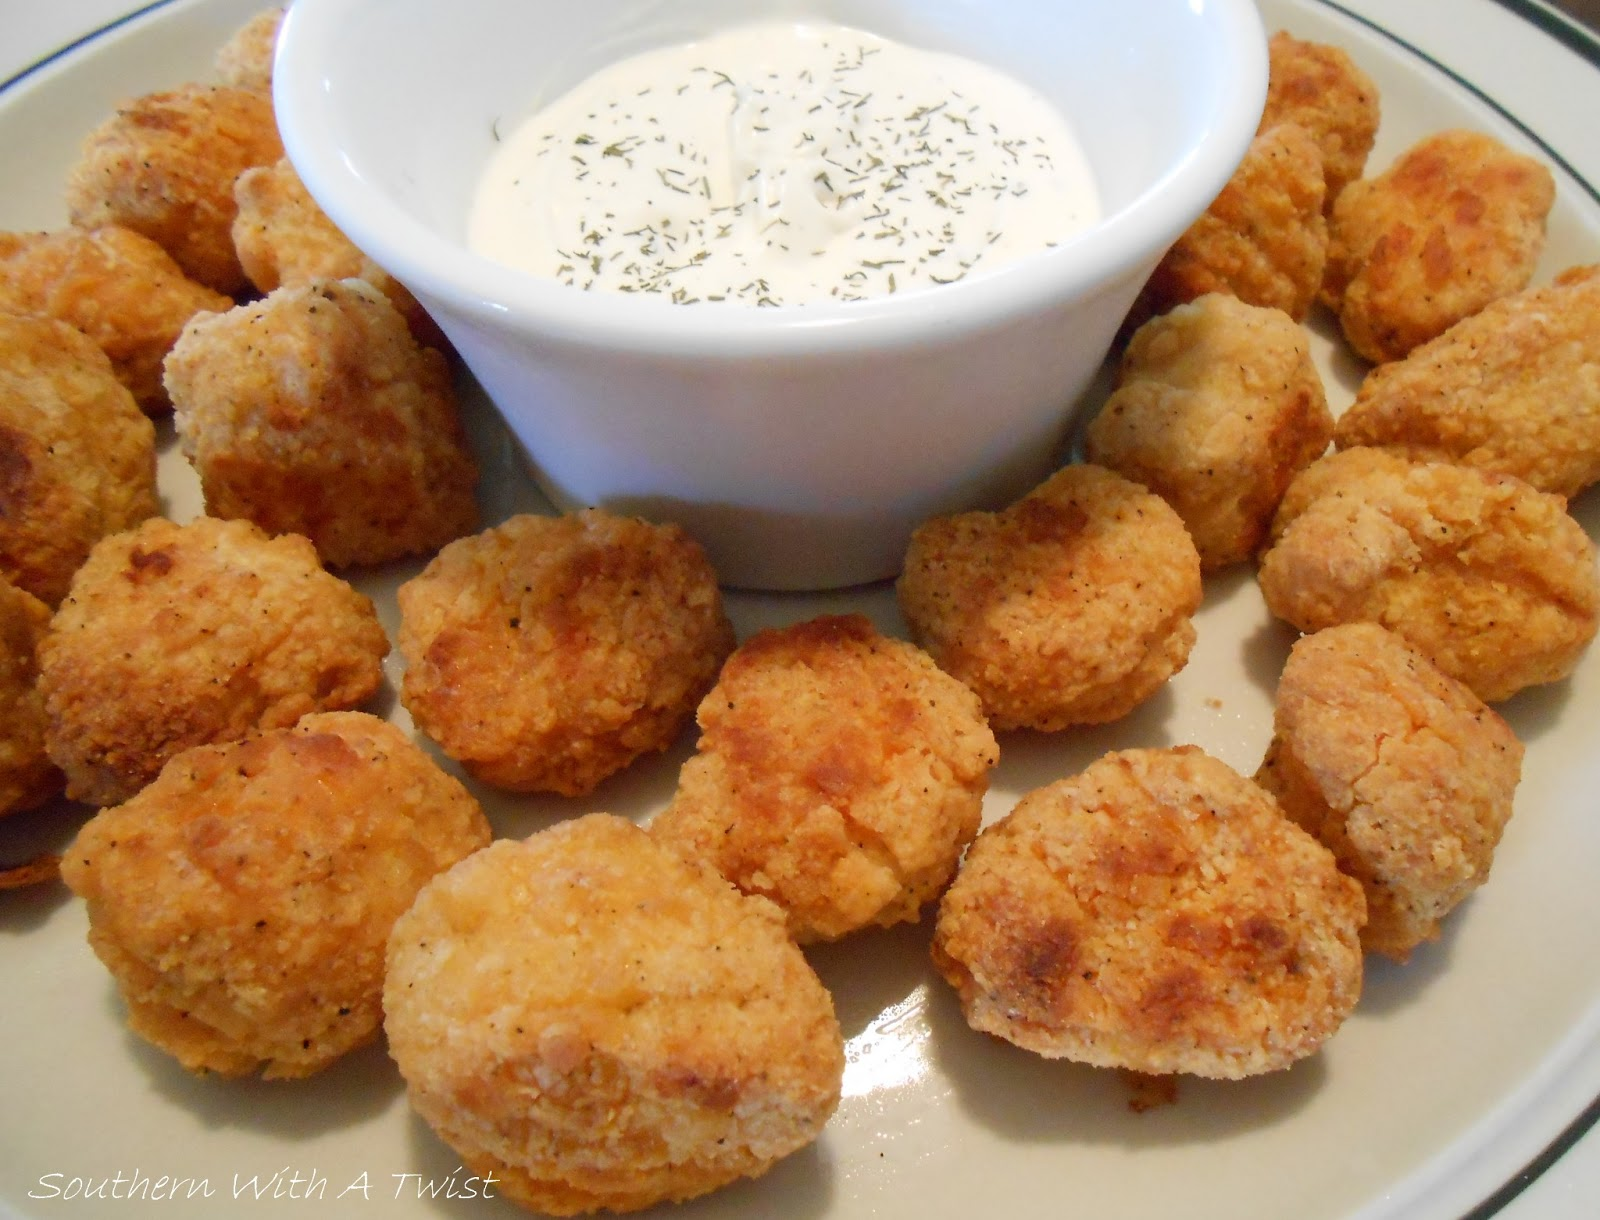 Southern With A Twist: Dilly Ranch Dip for Popcorn Chicken